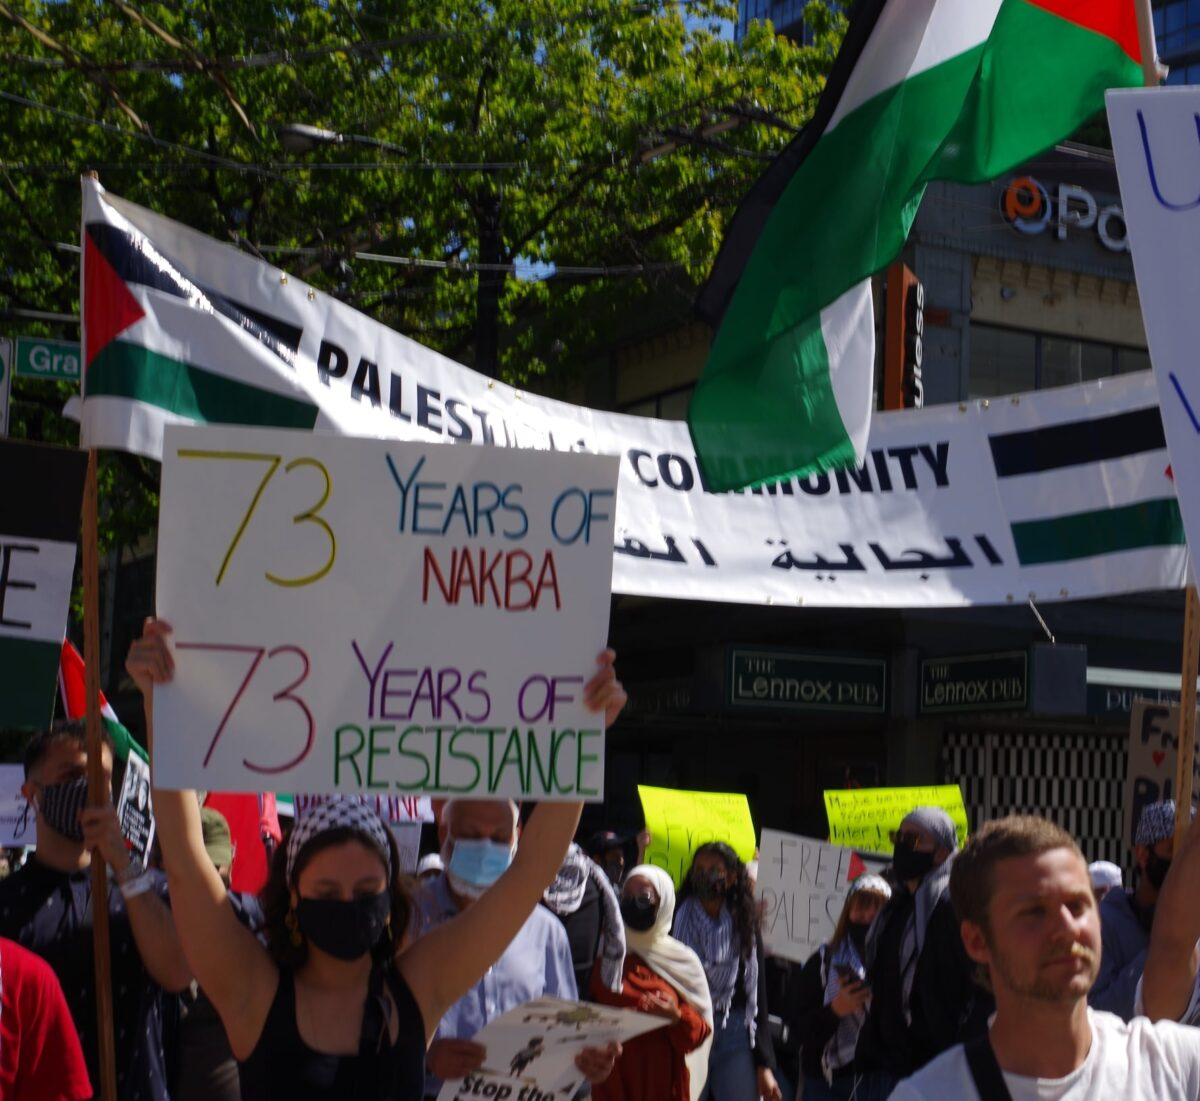 Vancouver comes out for Palestine in massive rally!